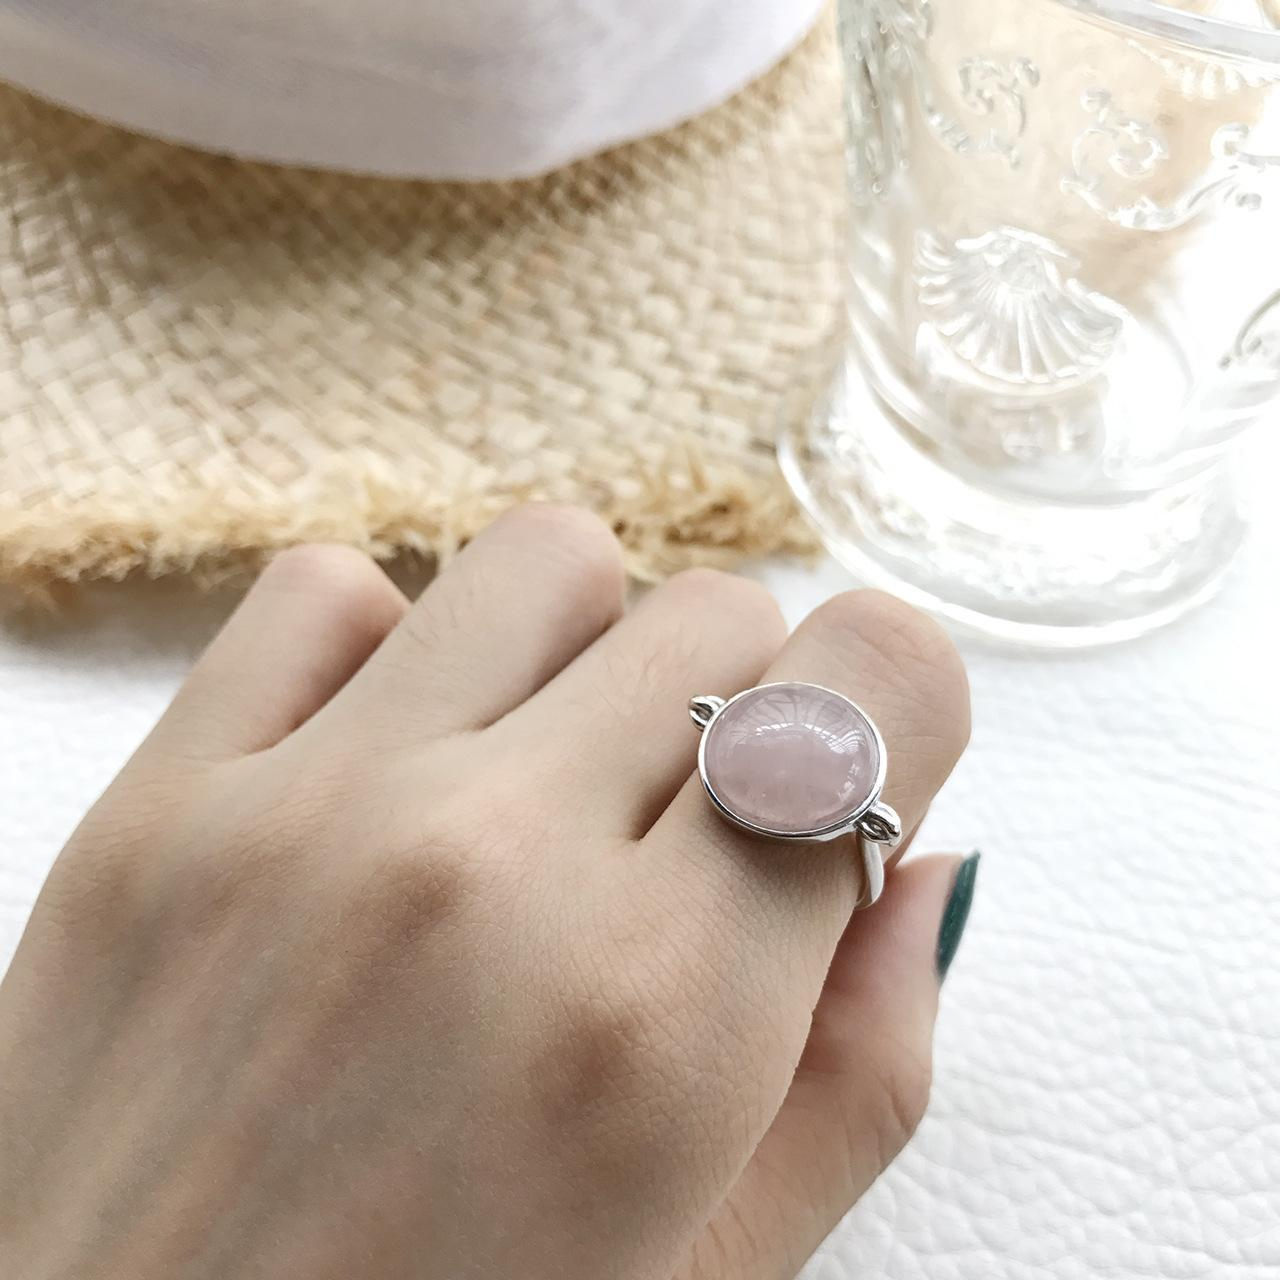 2019 Genuine 925 Sterling Silver October Droplet, Opalescent Pink Crystal  Finger Ring Women Wedding Jewelry From Go888Store, &price; | Dhgate In Recent Opalescent Pink Crystal October Droplet Pendant Necklaces (Gallery 19 of 25)